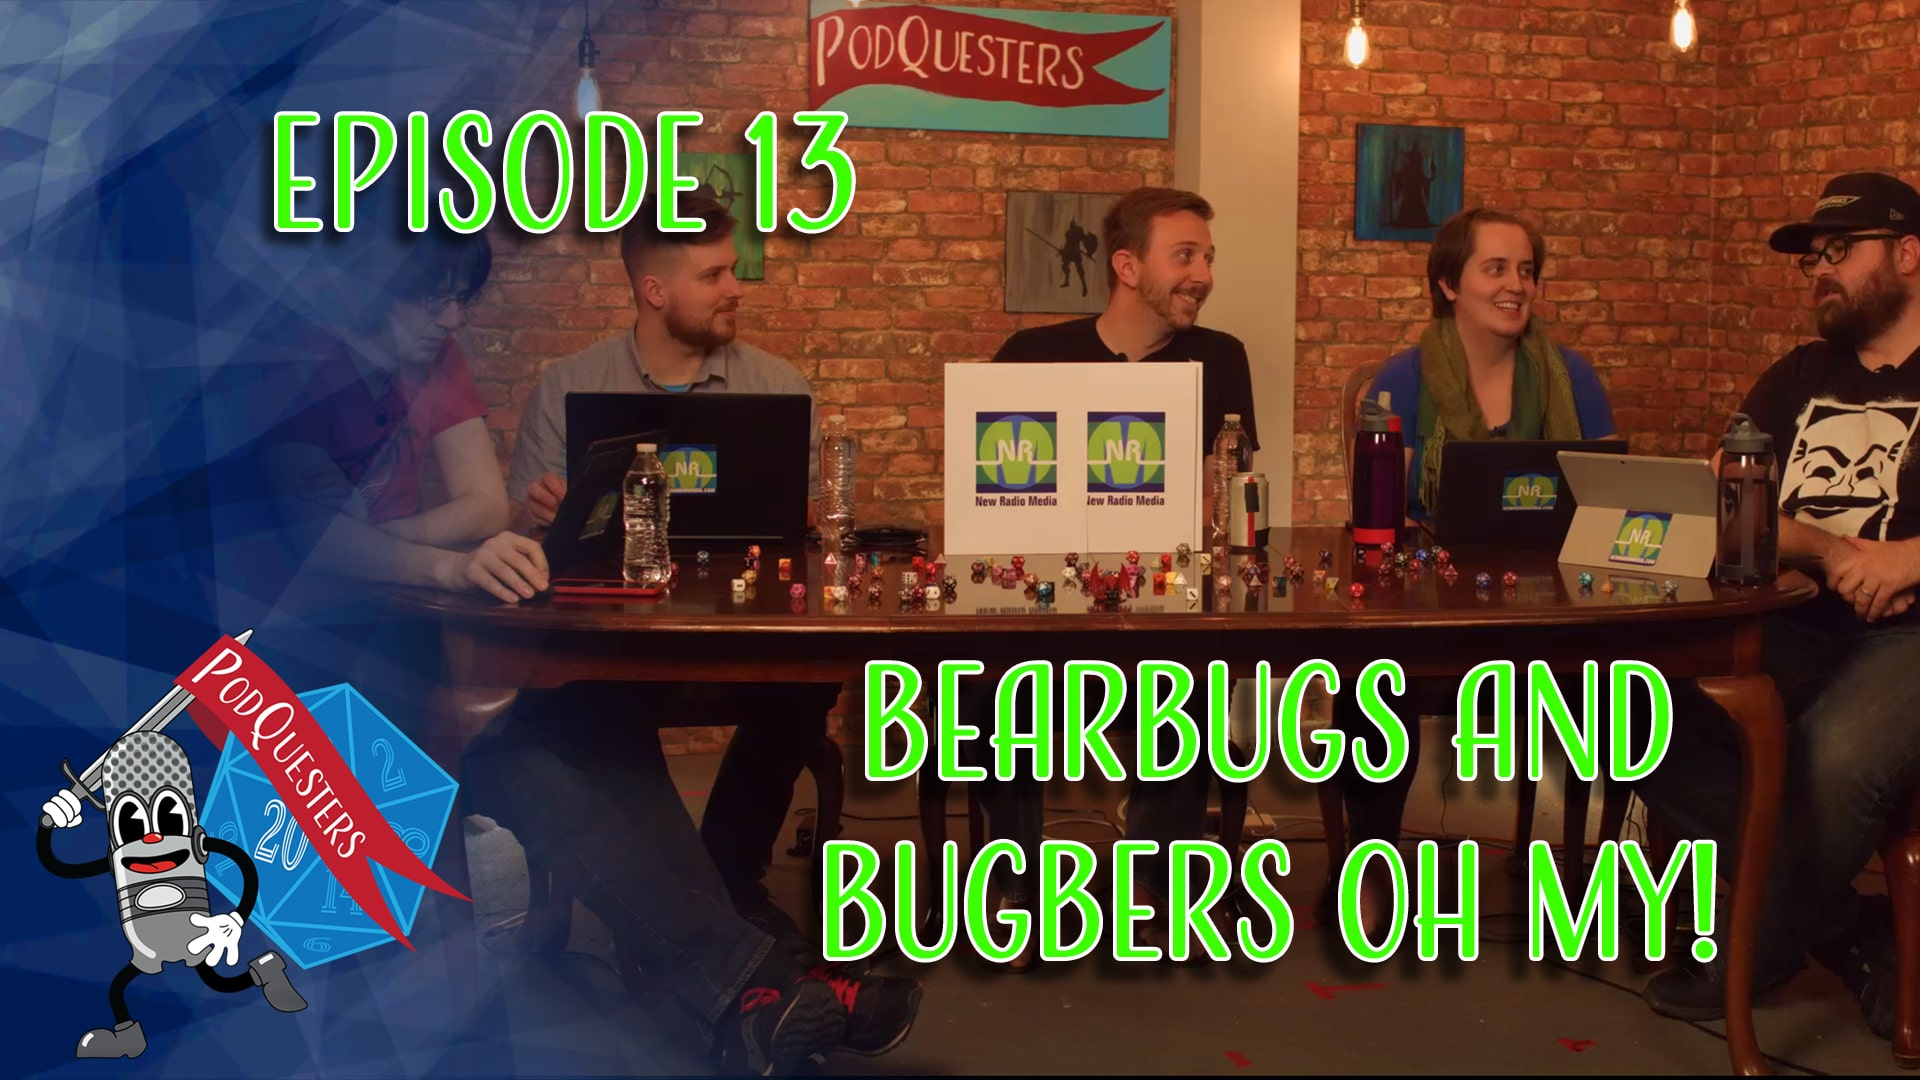 Podquesters - Episode 13: Bearbugs and Bugbers Oh My!